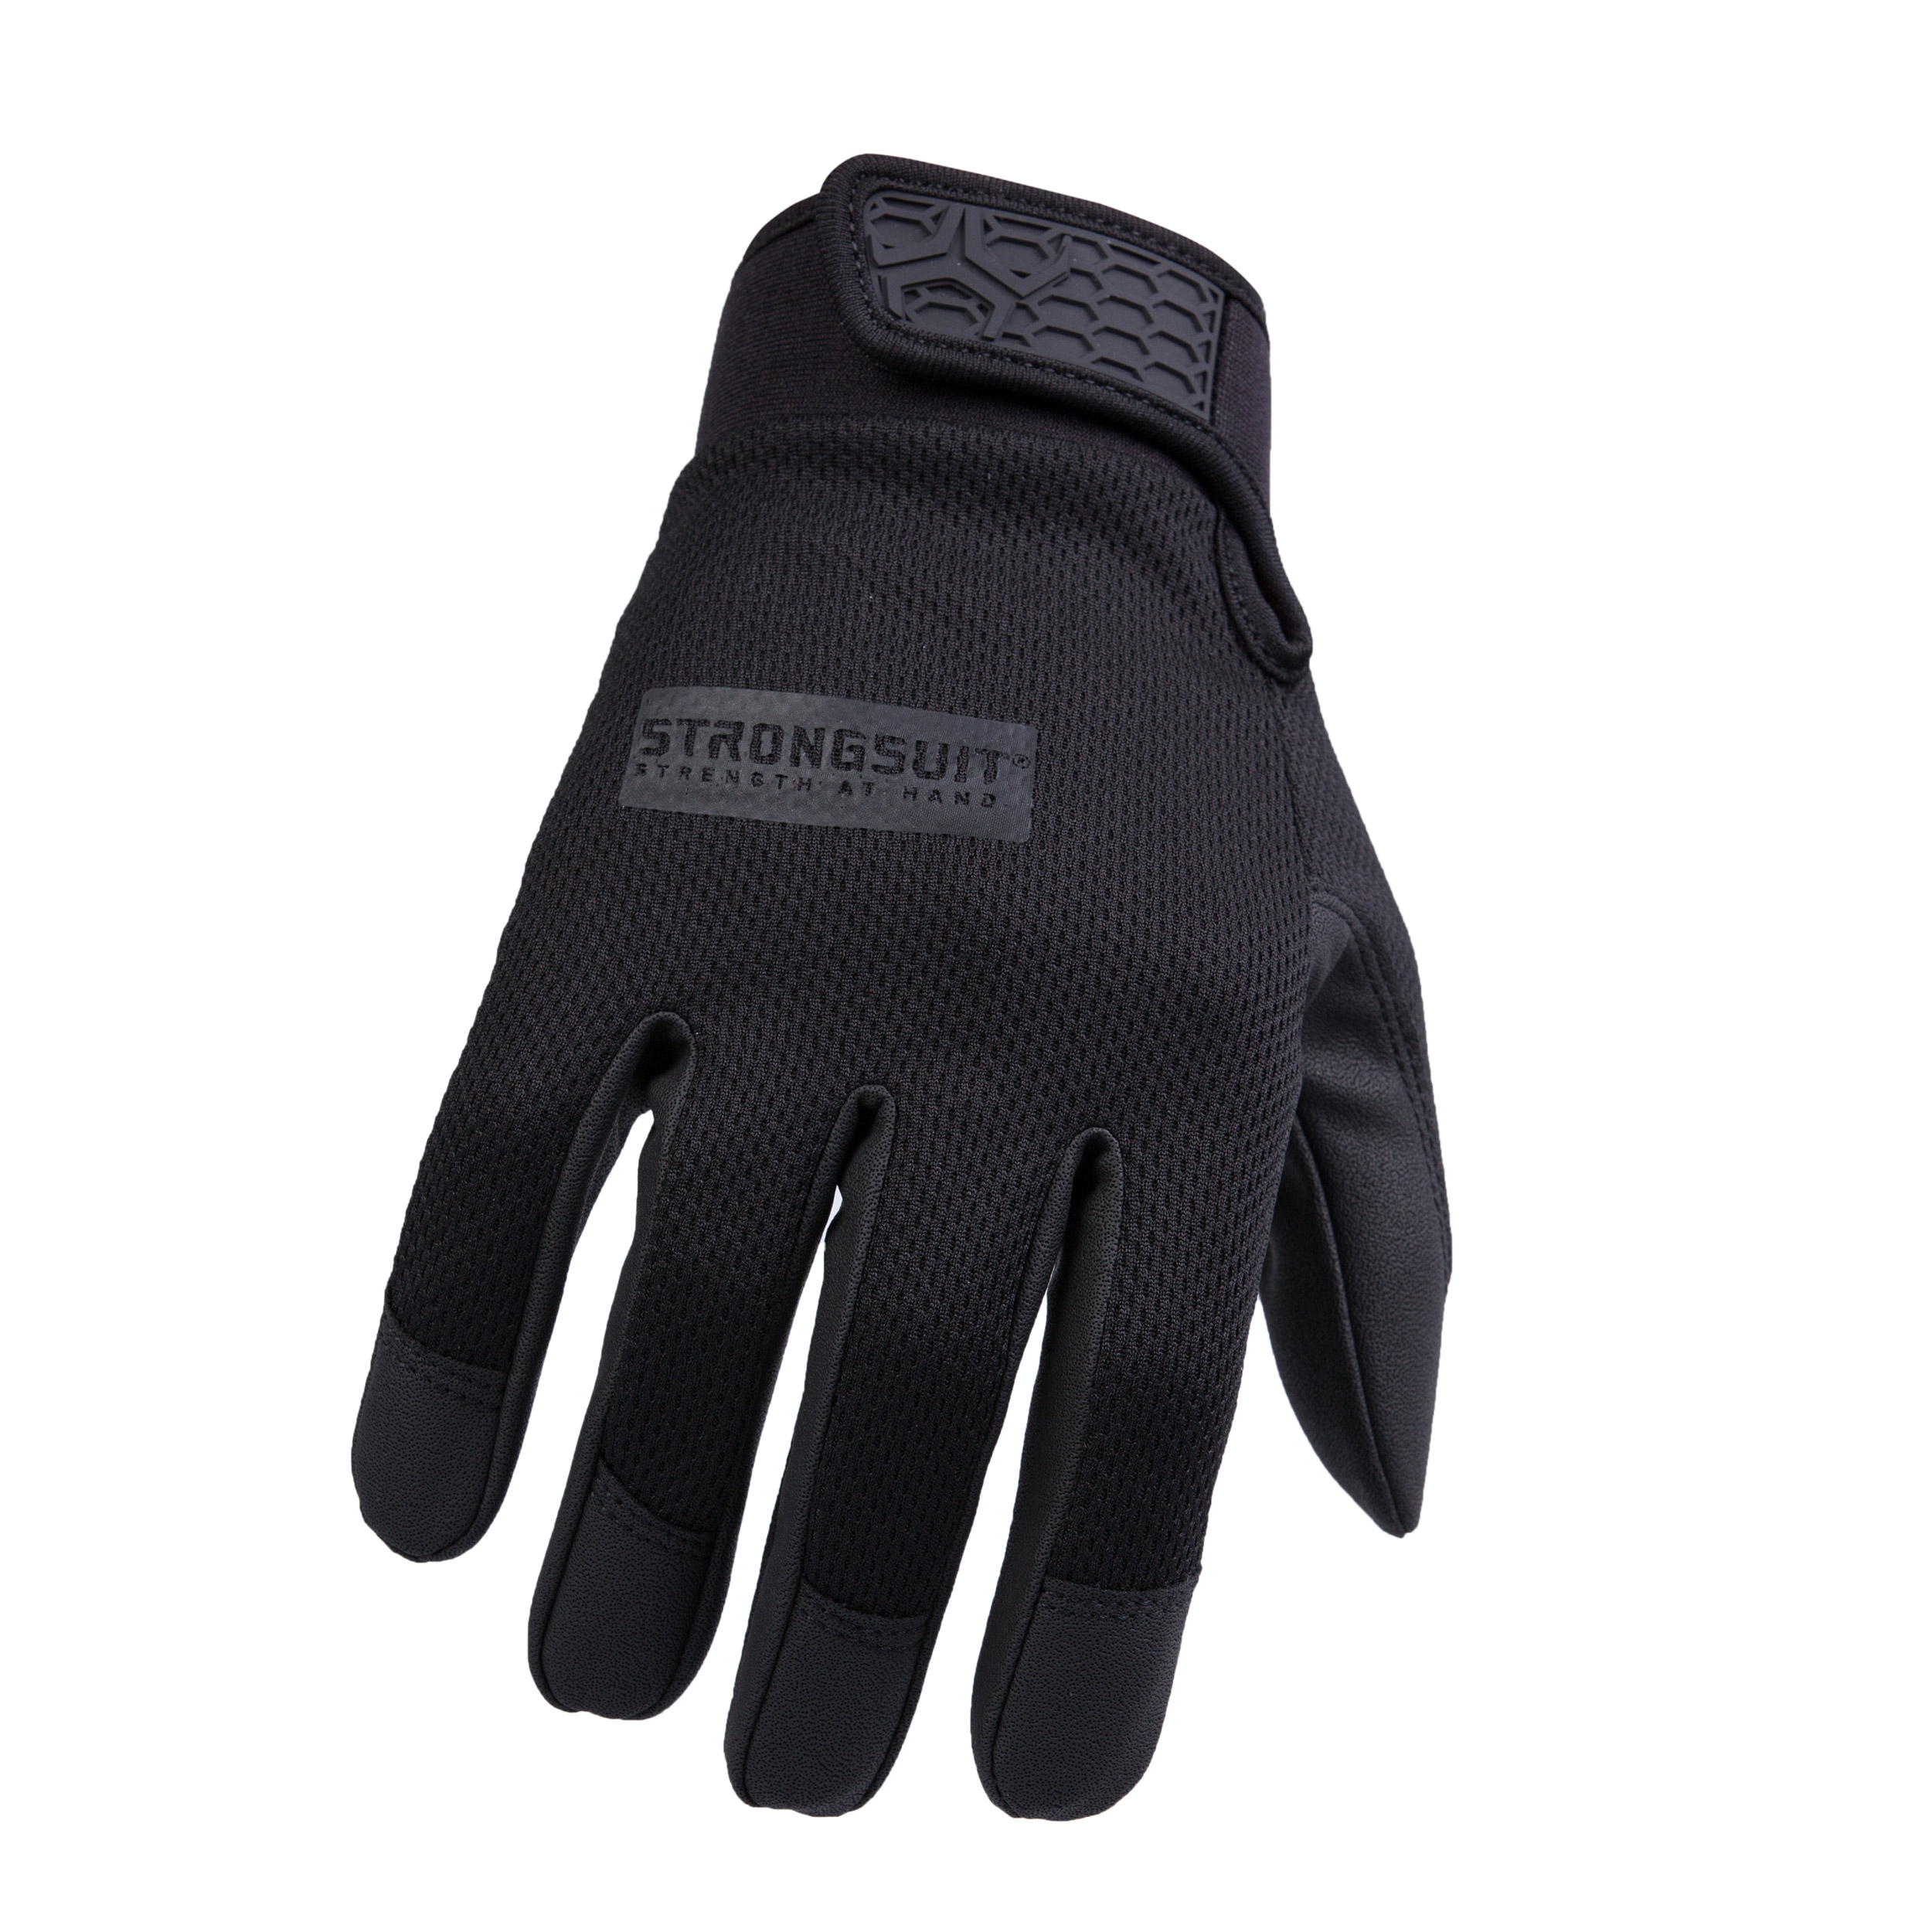 Second Skin Gloves, Black, Medium